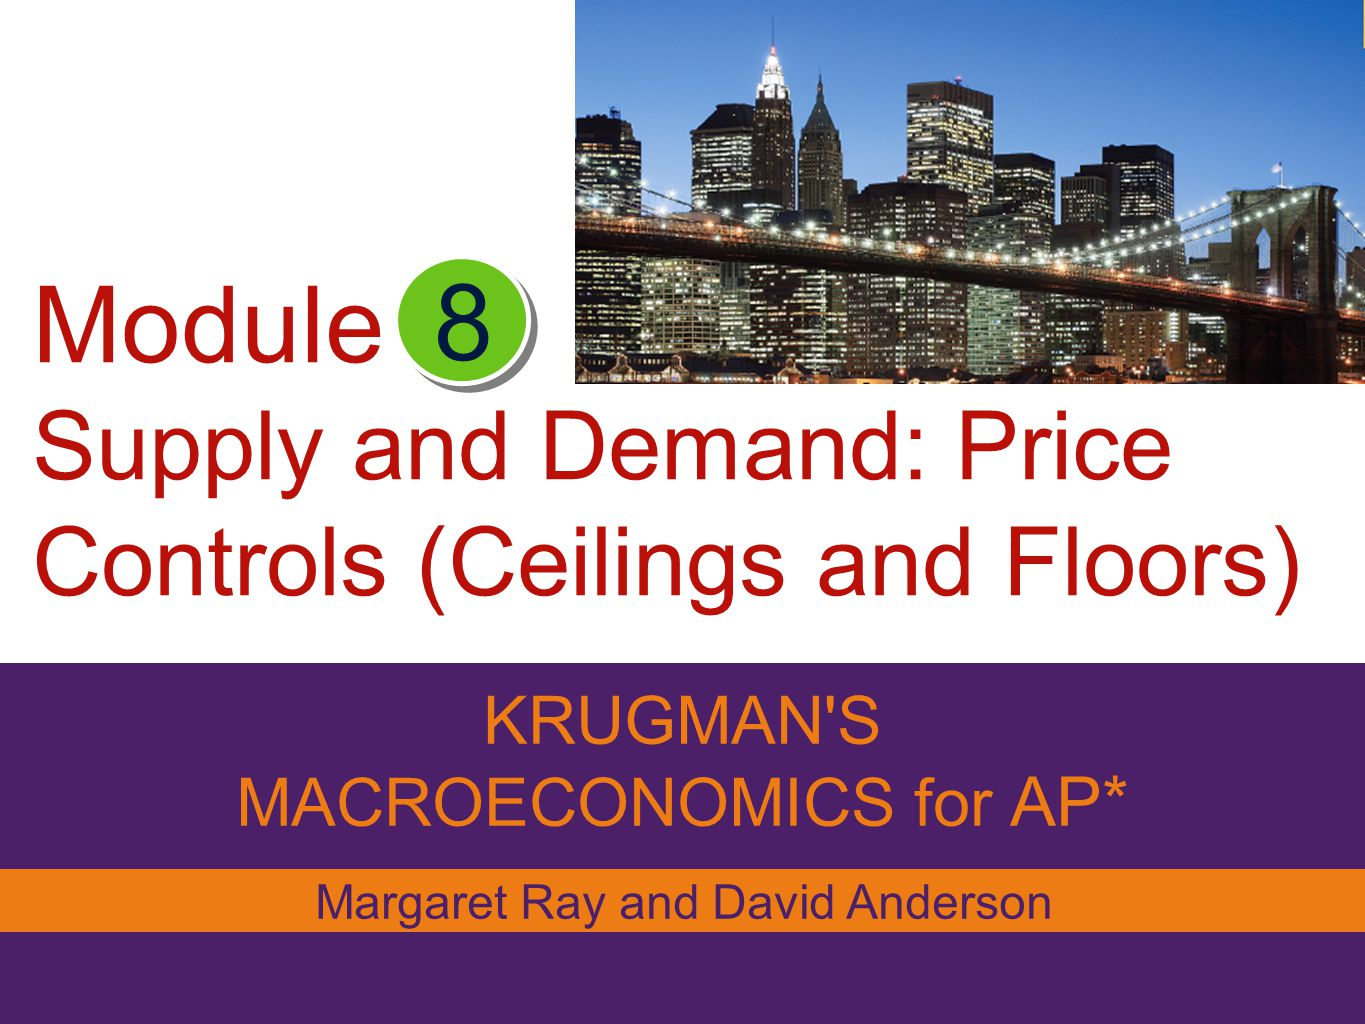 What you will learn in this Module : The meaning of price controls, one way government intervenes in markets How price controls can create problems and make a market inefficient Why economists are often deeply skeptical of attempts to intervene in markets Who benefits and who loses from price controls, and why they are used despite their well-known problems